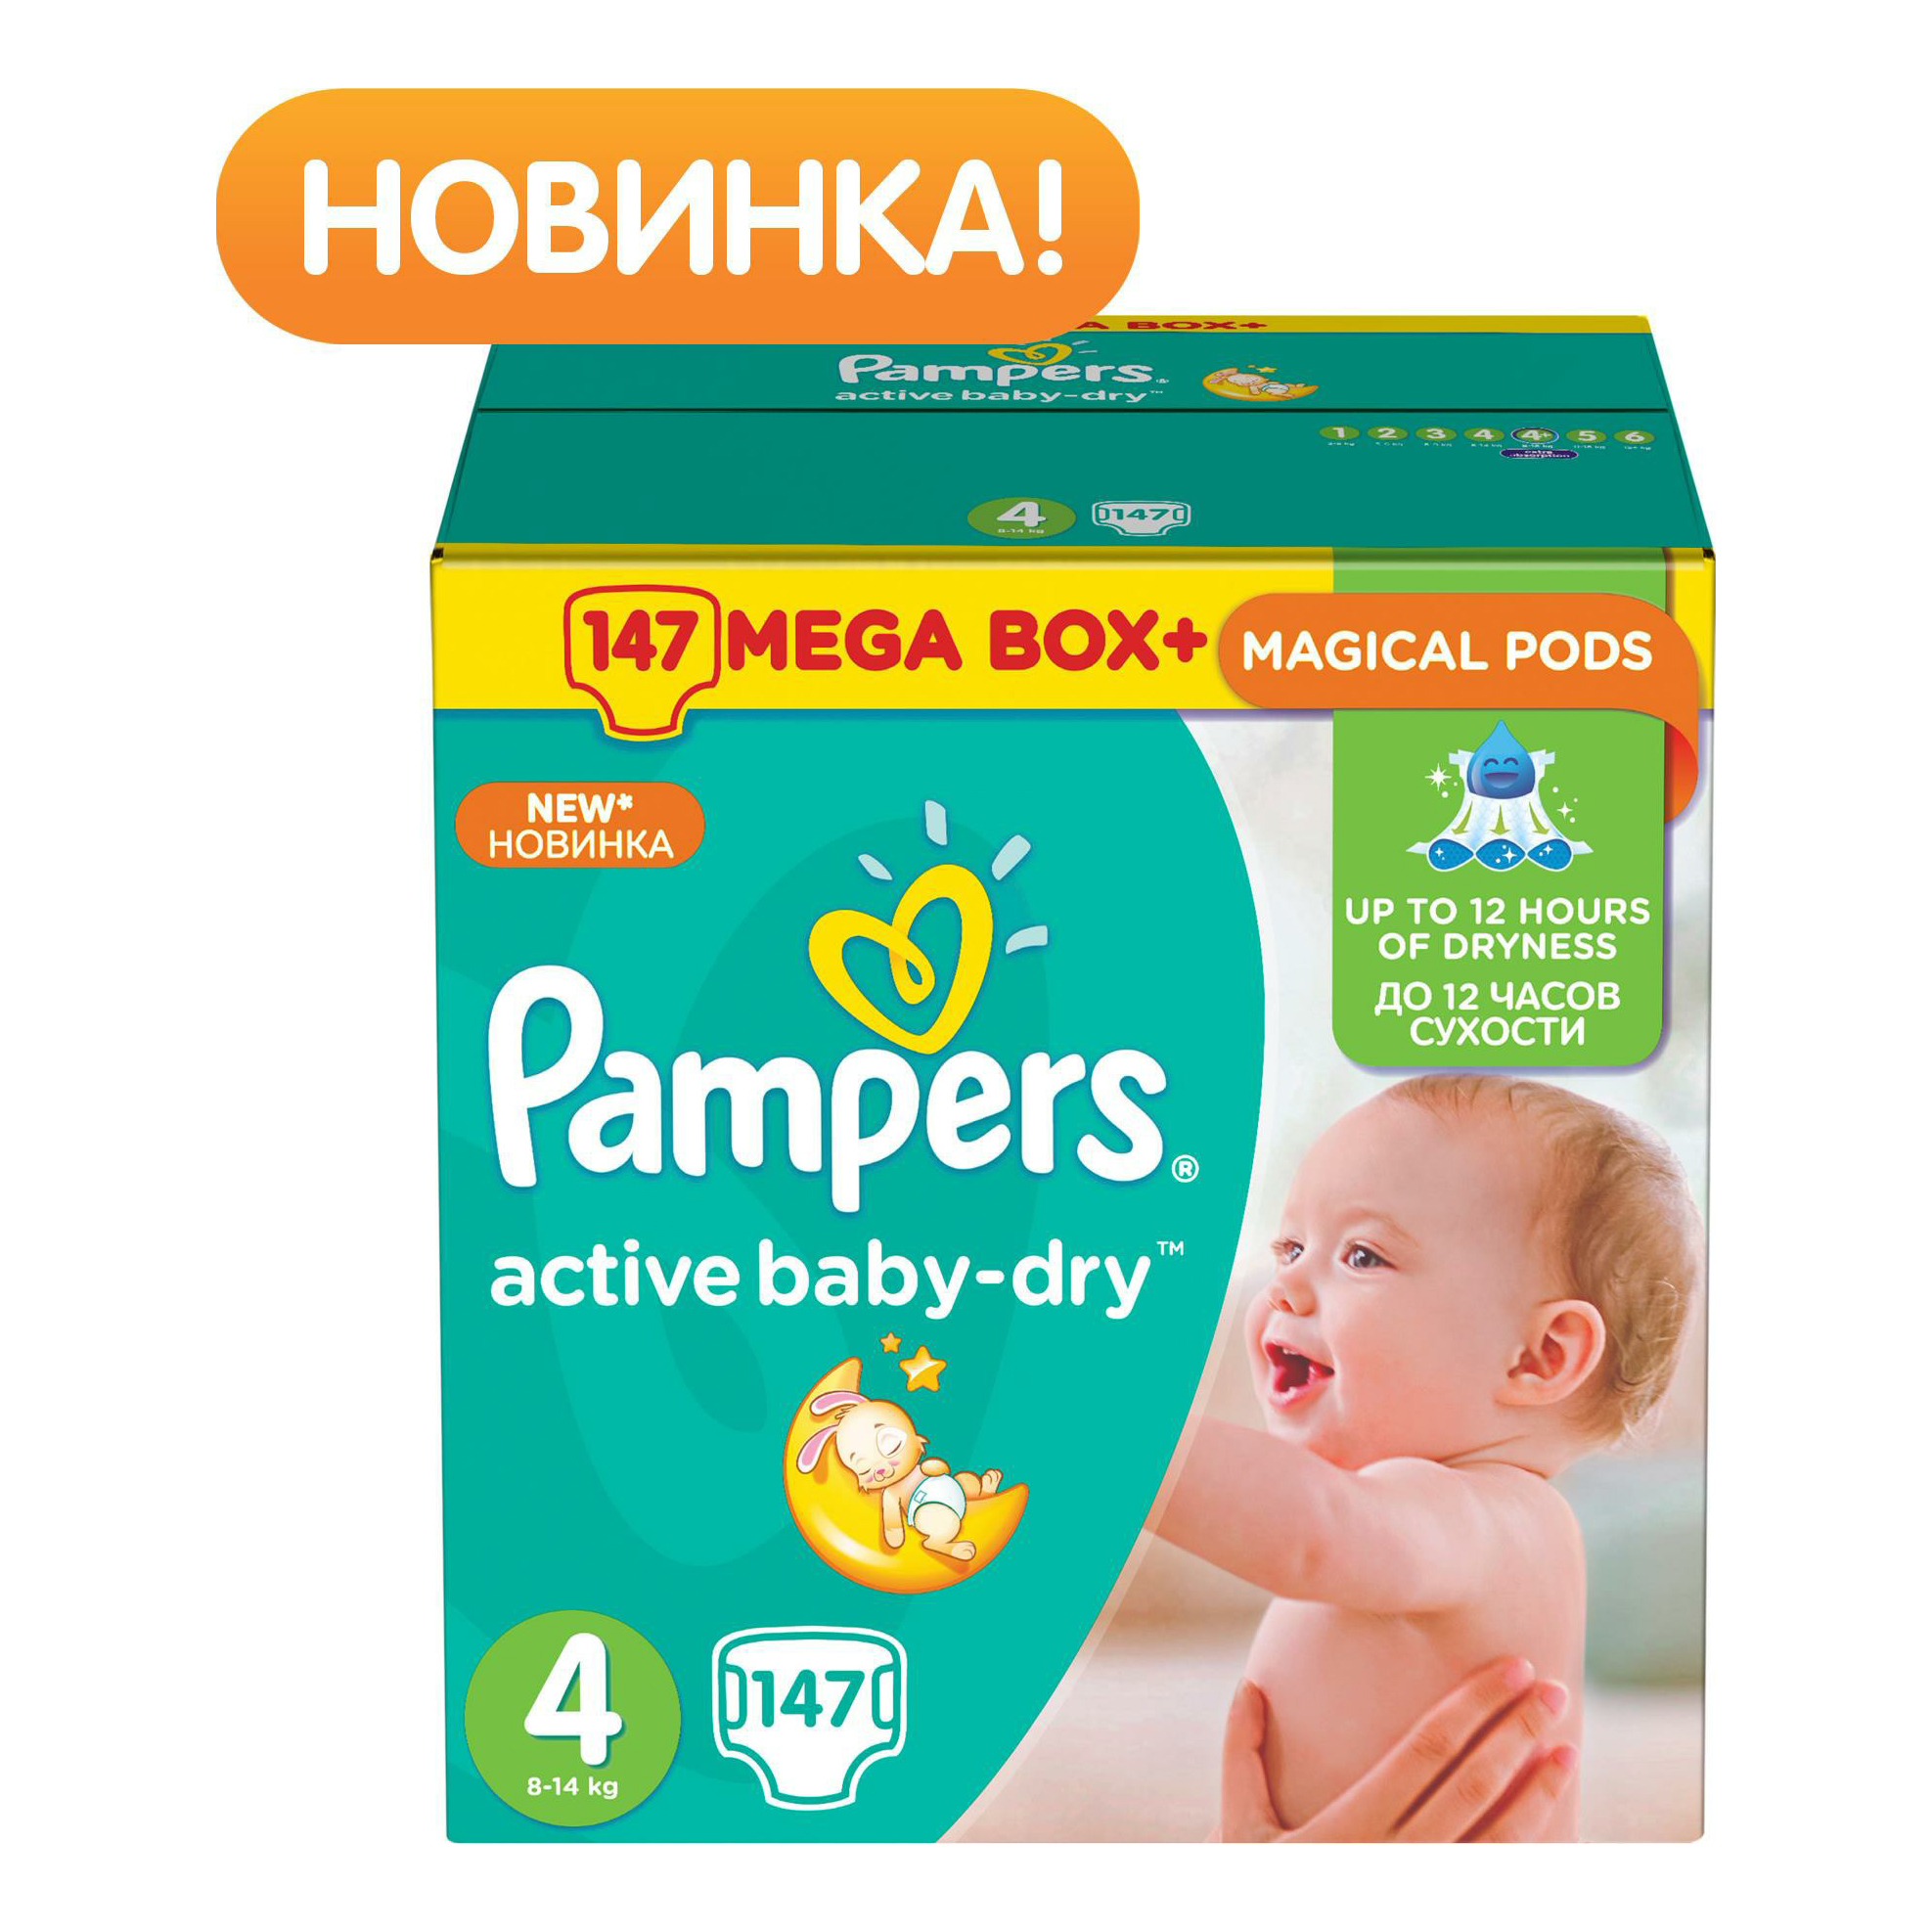 Подгузники Pampers Active Baby-Dry-Dry 4 maxi 8-14 кг mega box